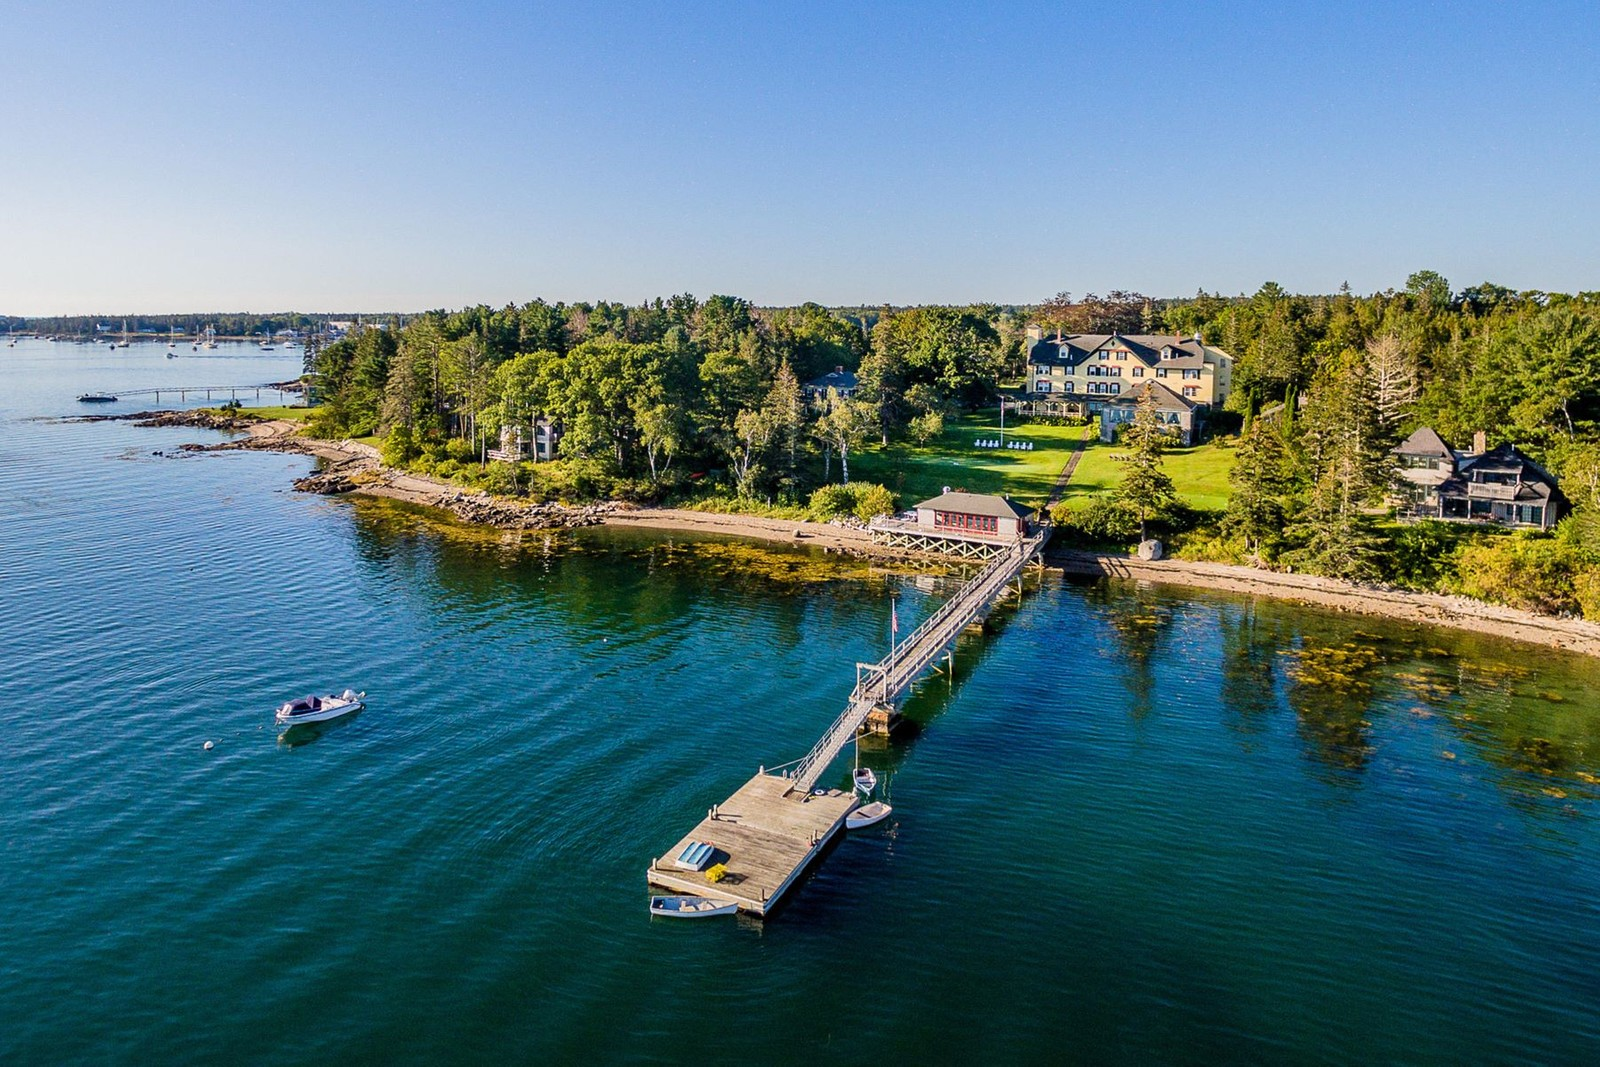 Commercial for Sale at 20 Claremont Road Southwest Harbor, Maine 04679 United States